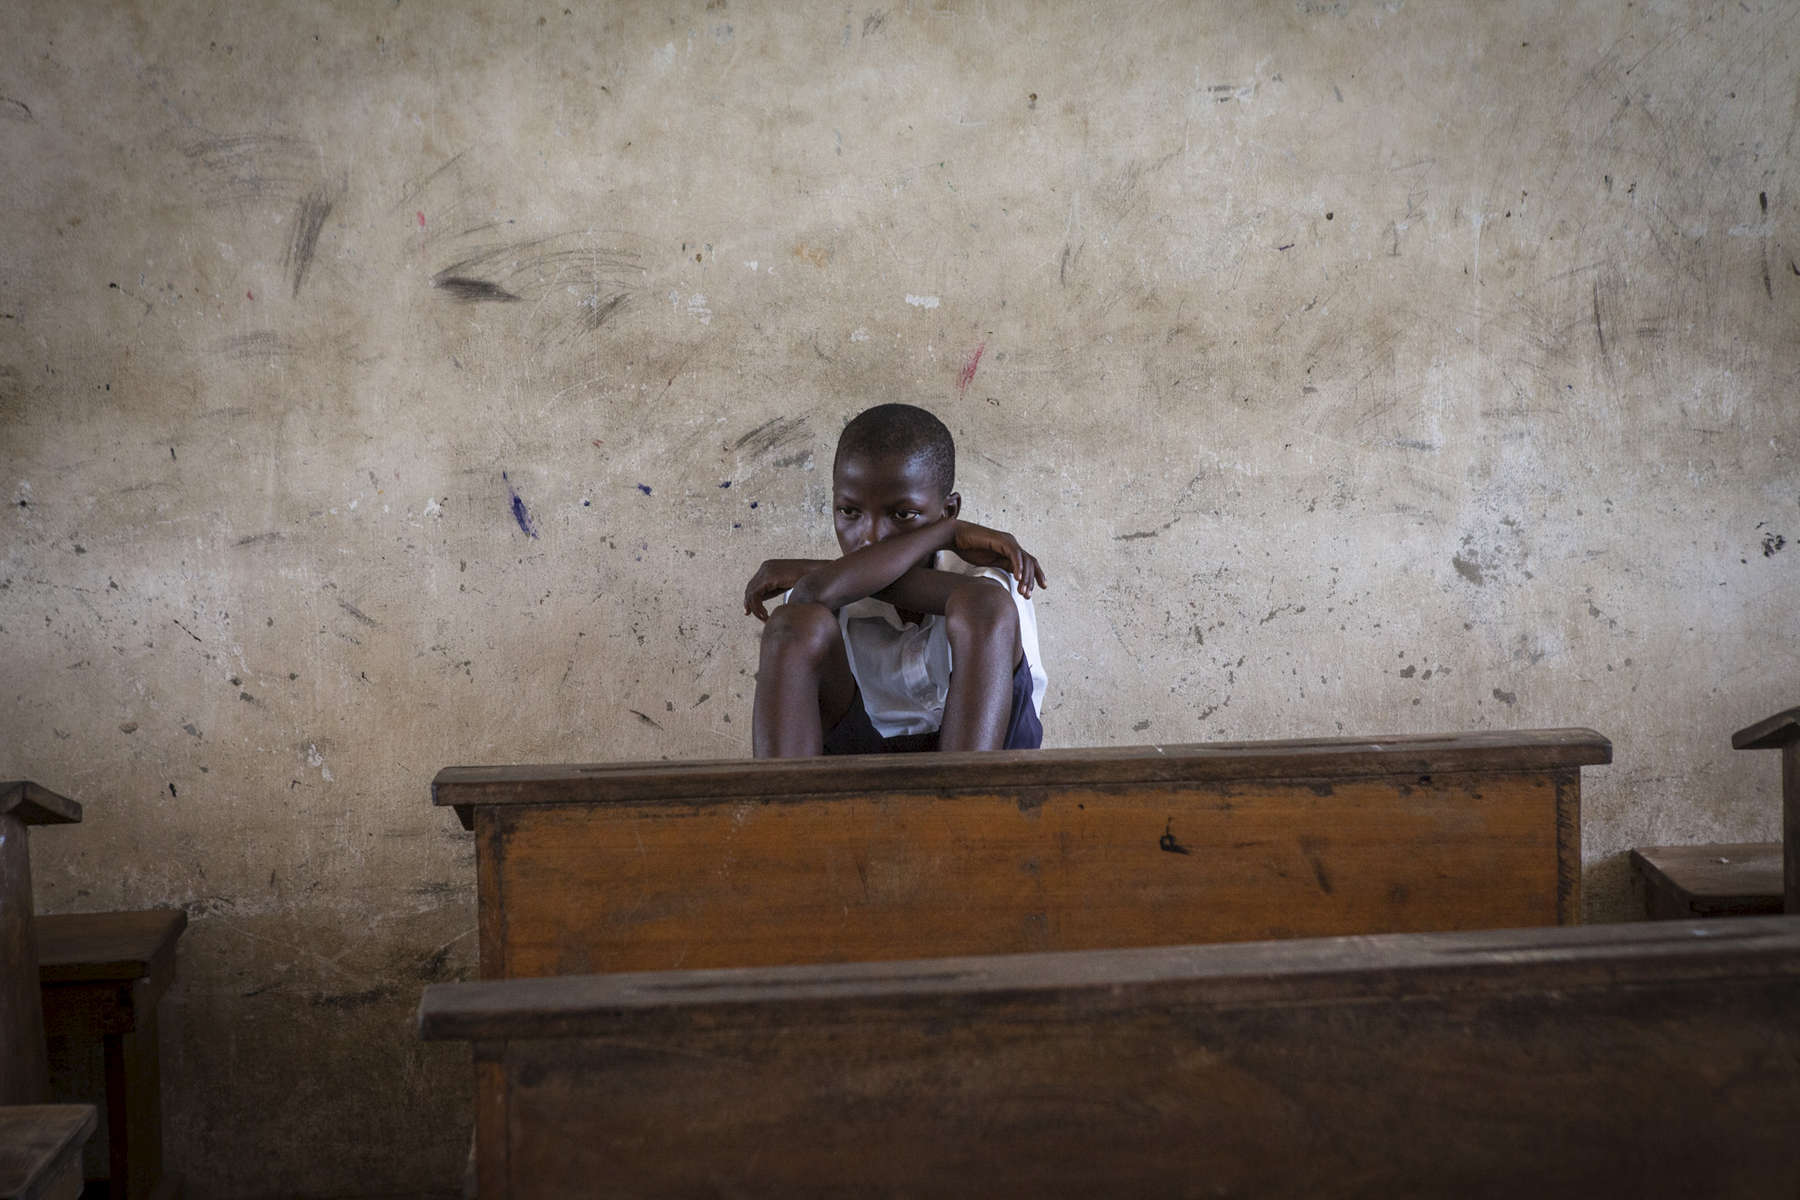 A student sits at the back of an empty classroom during recess at the R.S. Caufield Public School in Unification, Liberia